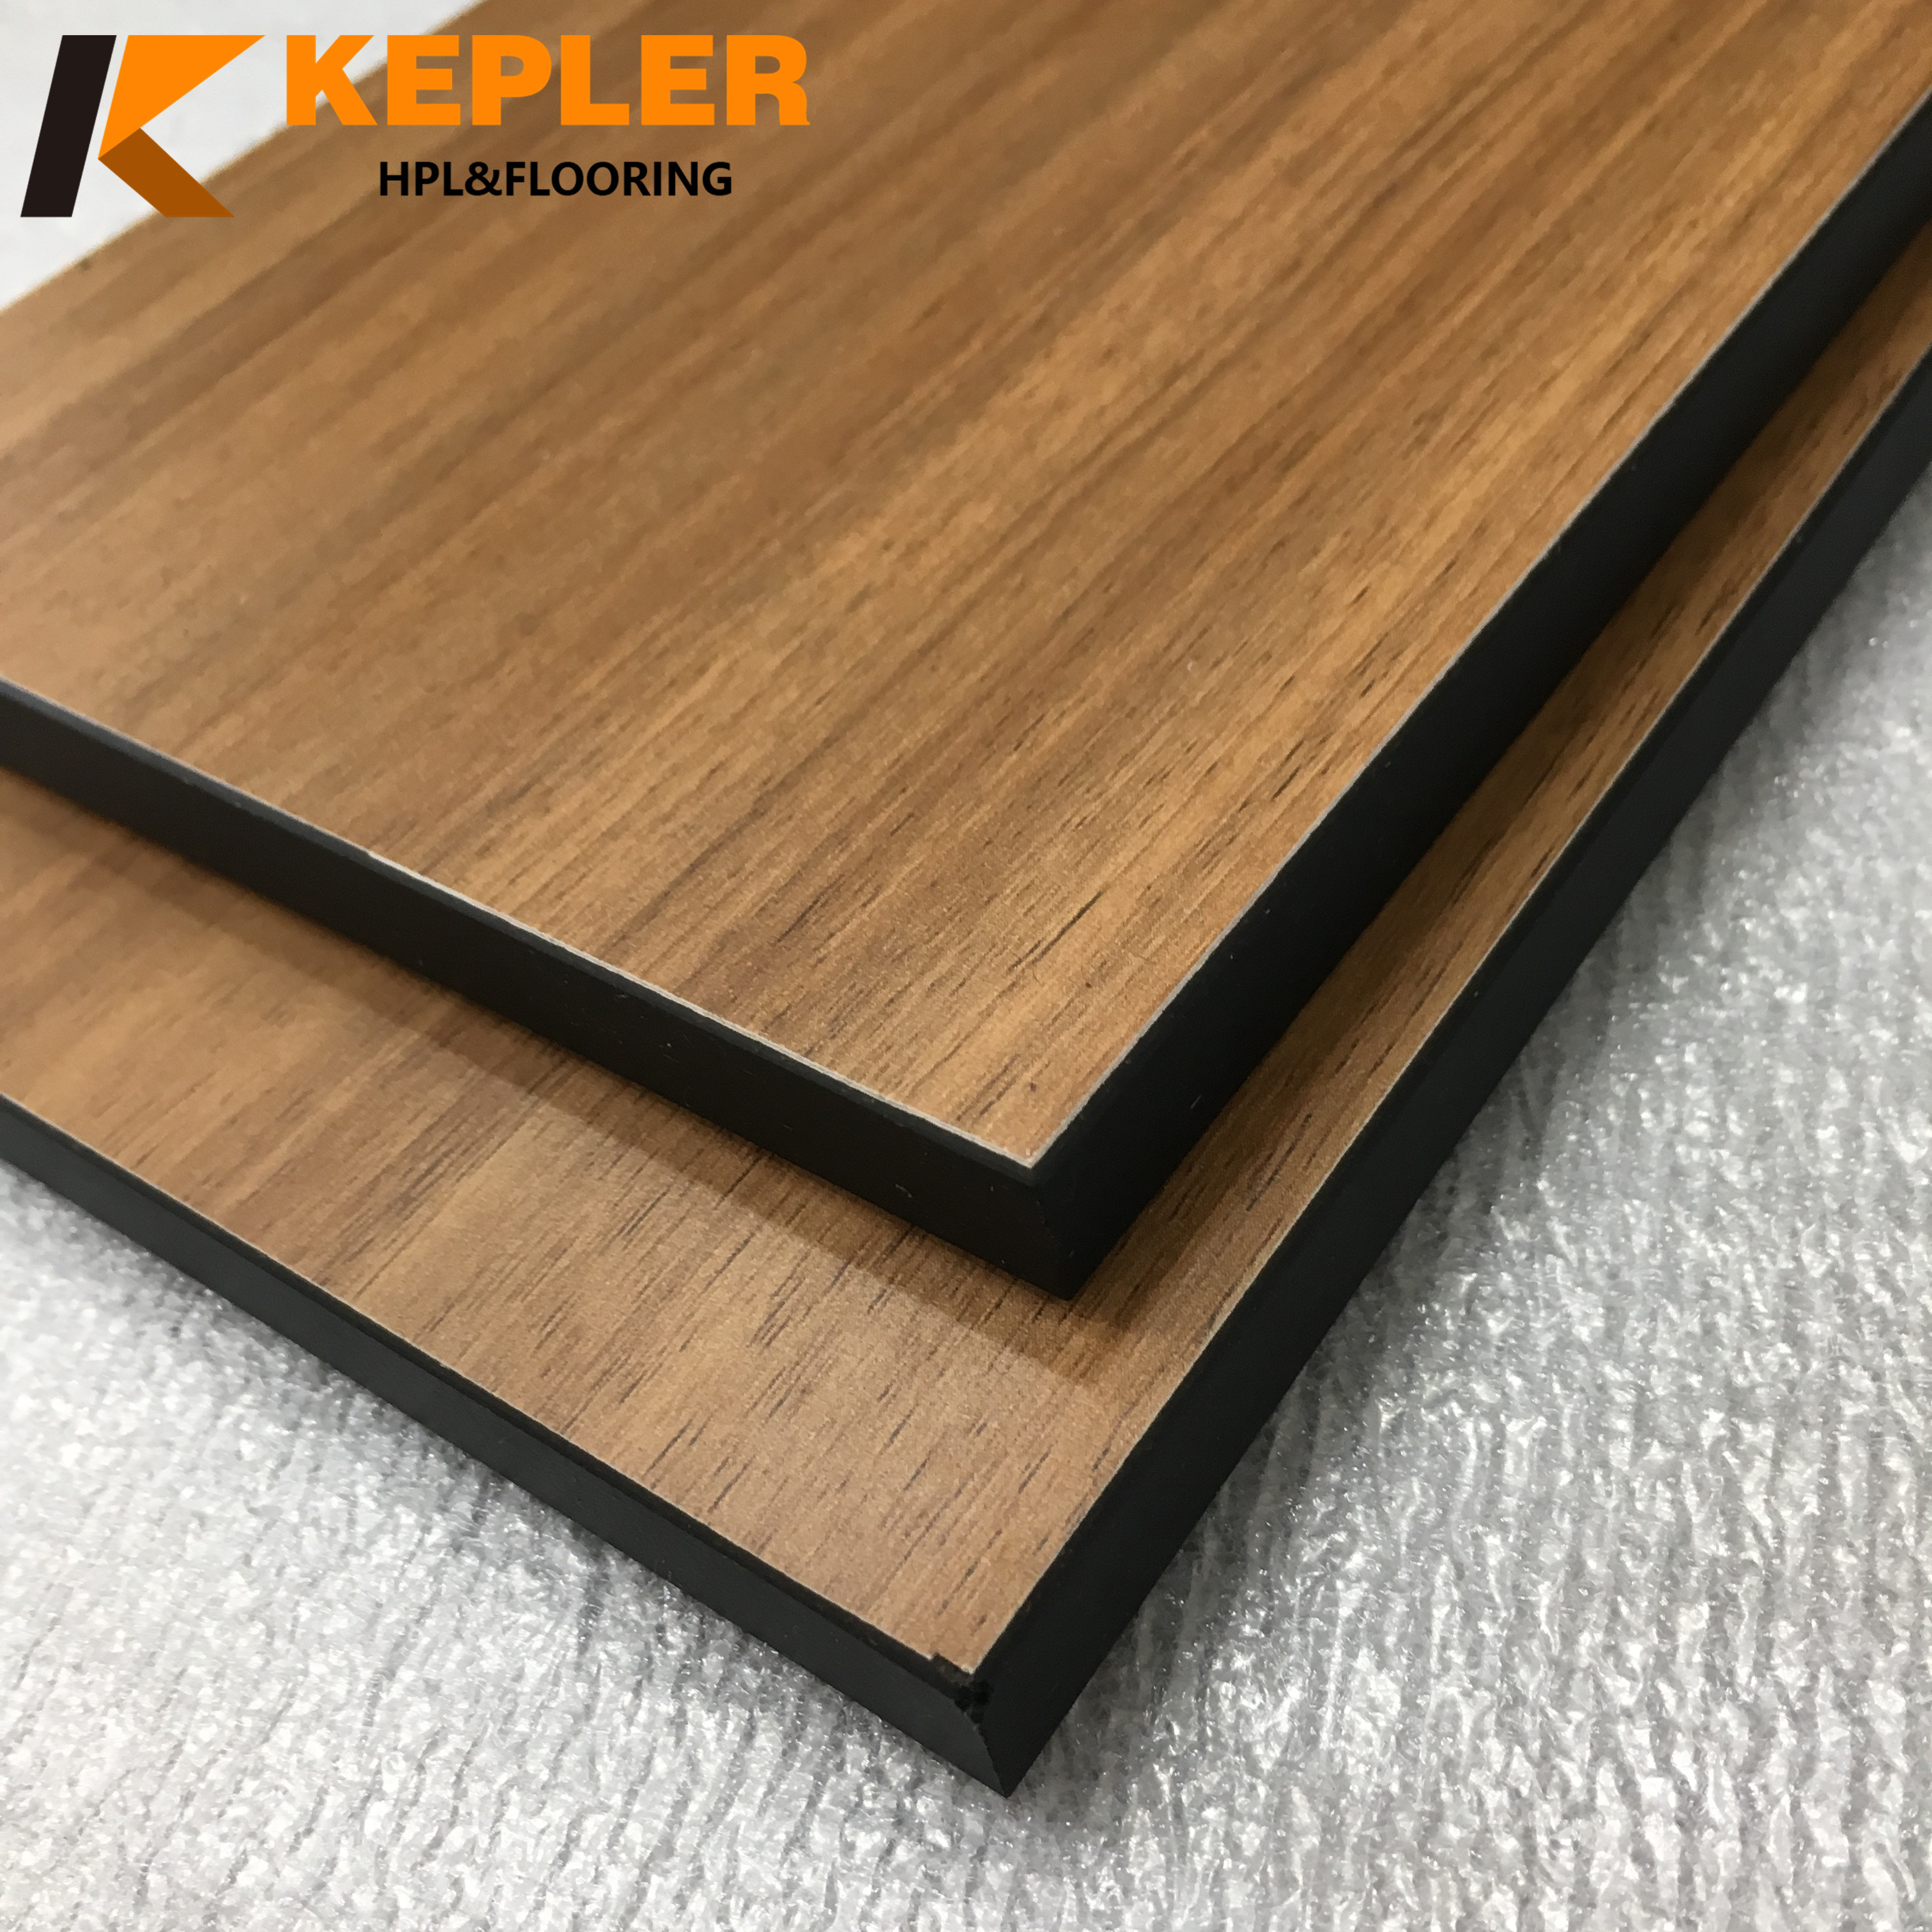 Kepler 12mm Wood Grain Color Phenolic High Pressure Laminate Compact Laminate Board